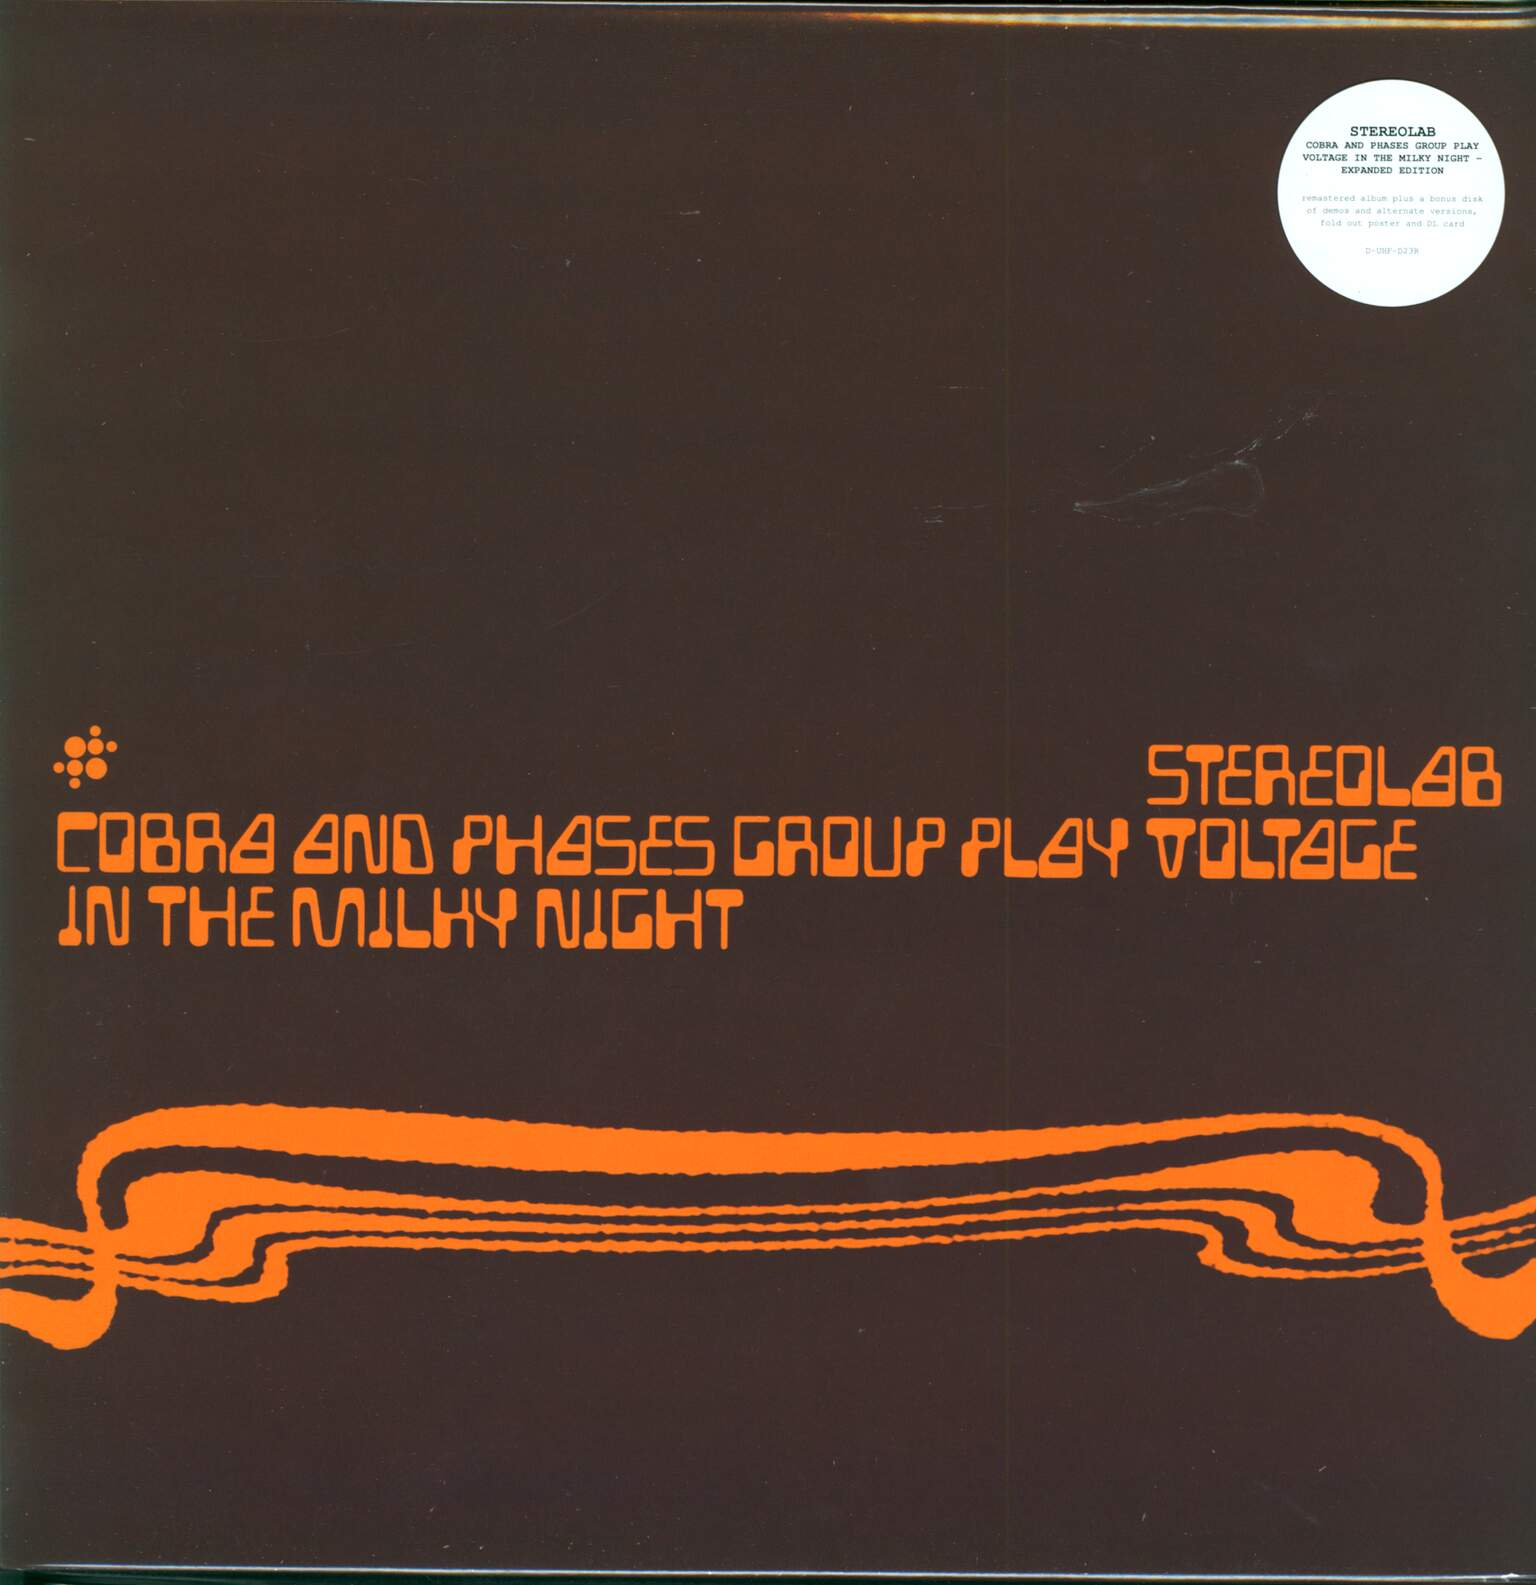 Stereolab: Cobra And Phases Group Play Voltage In The Milky Night, 2×LP (Vinyl), 1×LP (Vinyl)